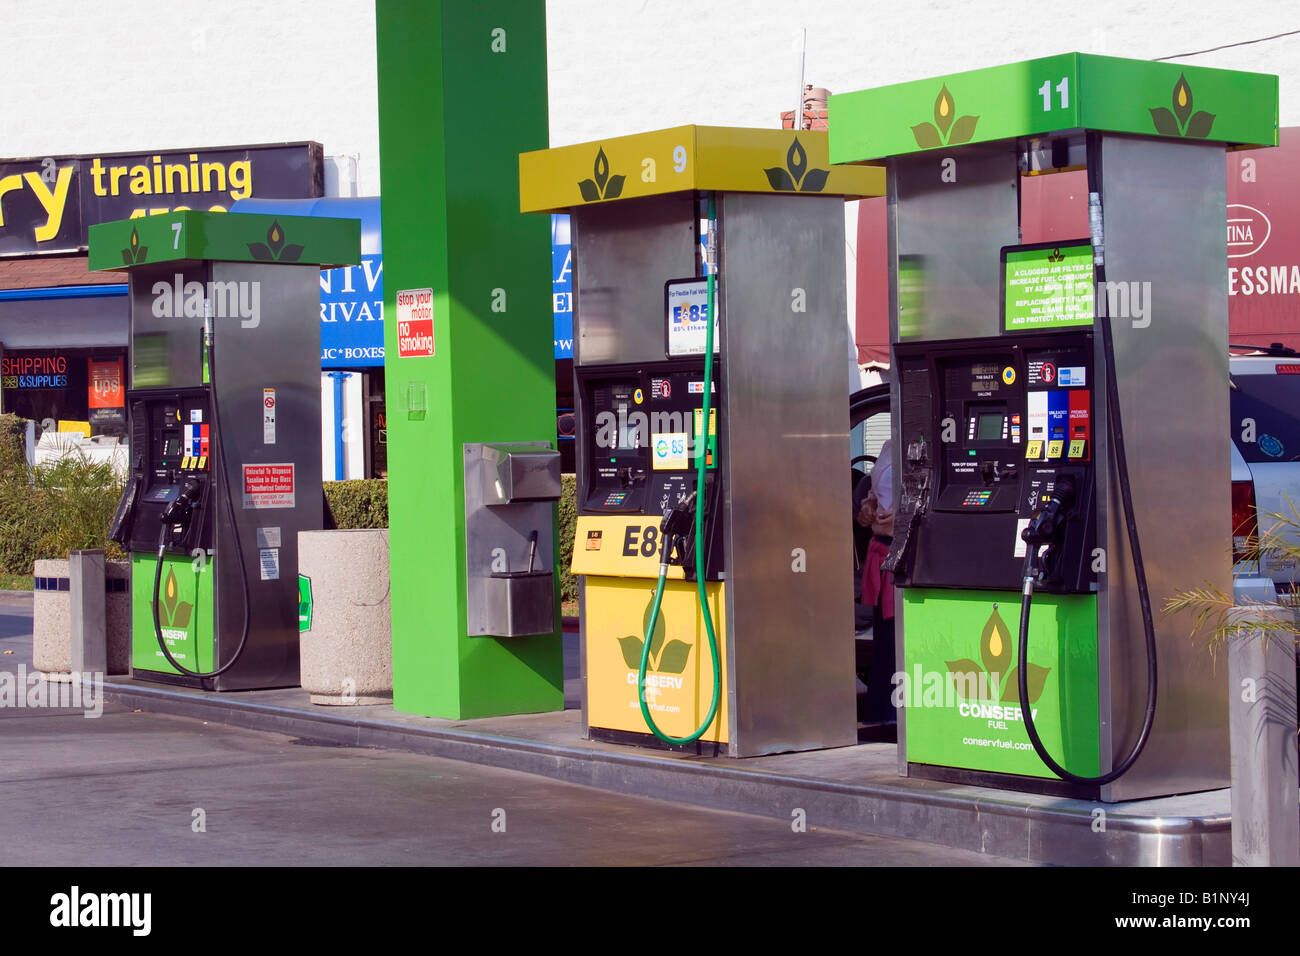 E85 Gas Stations >> Conserv Fuel Gas Station Sells Biodiesel And Ethanol